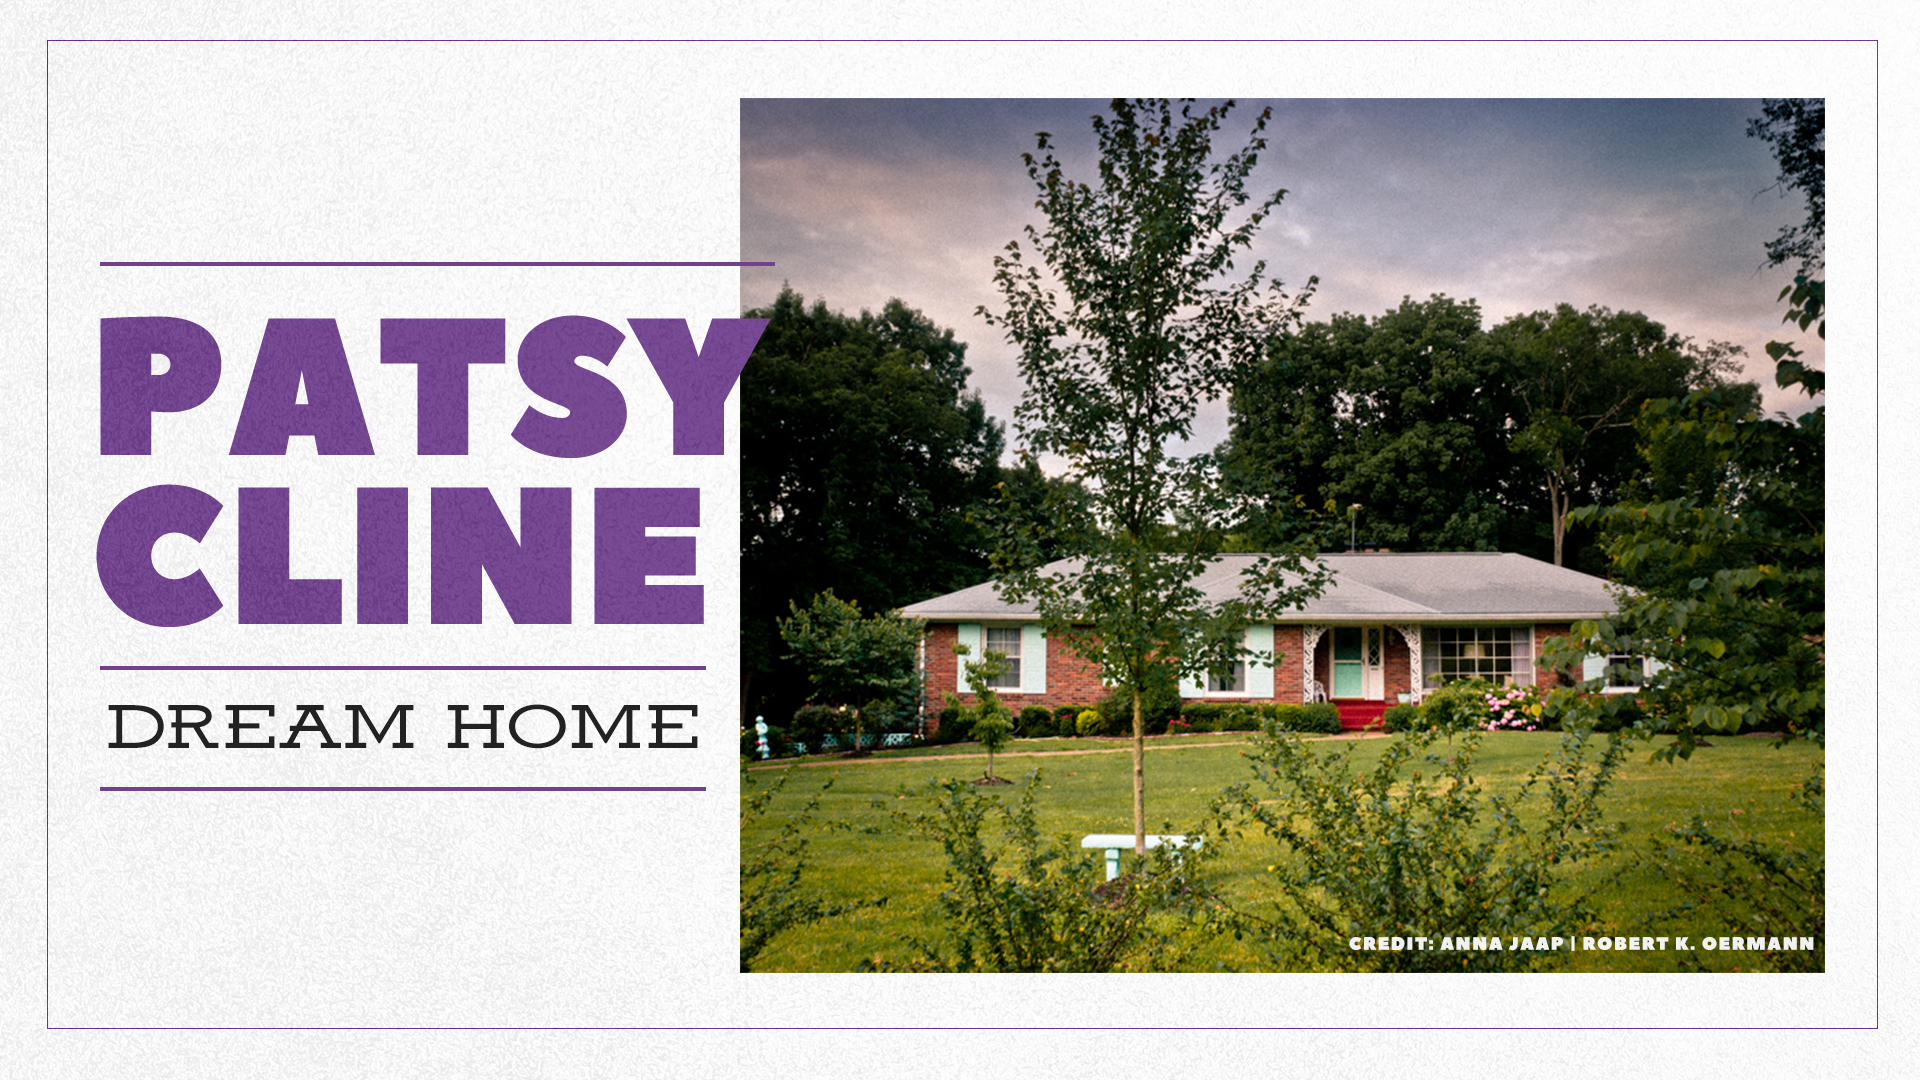 Patsy Cline Dream Home